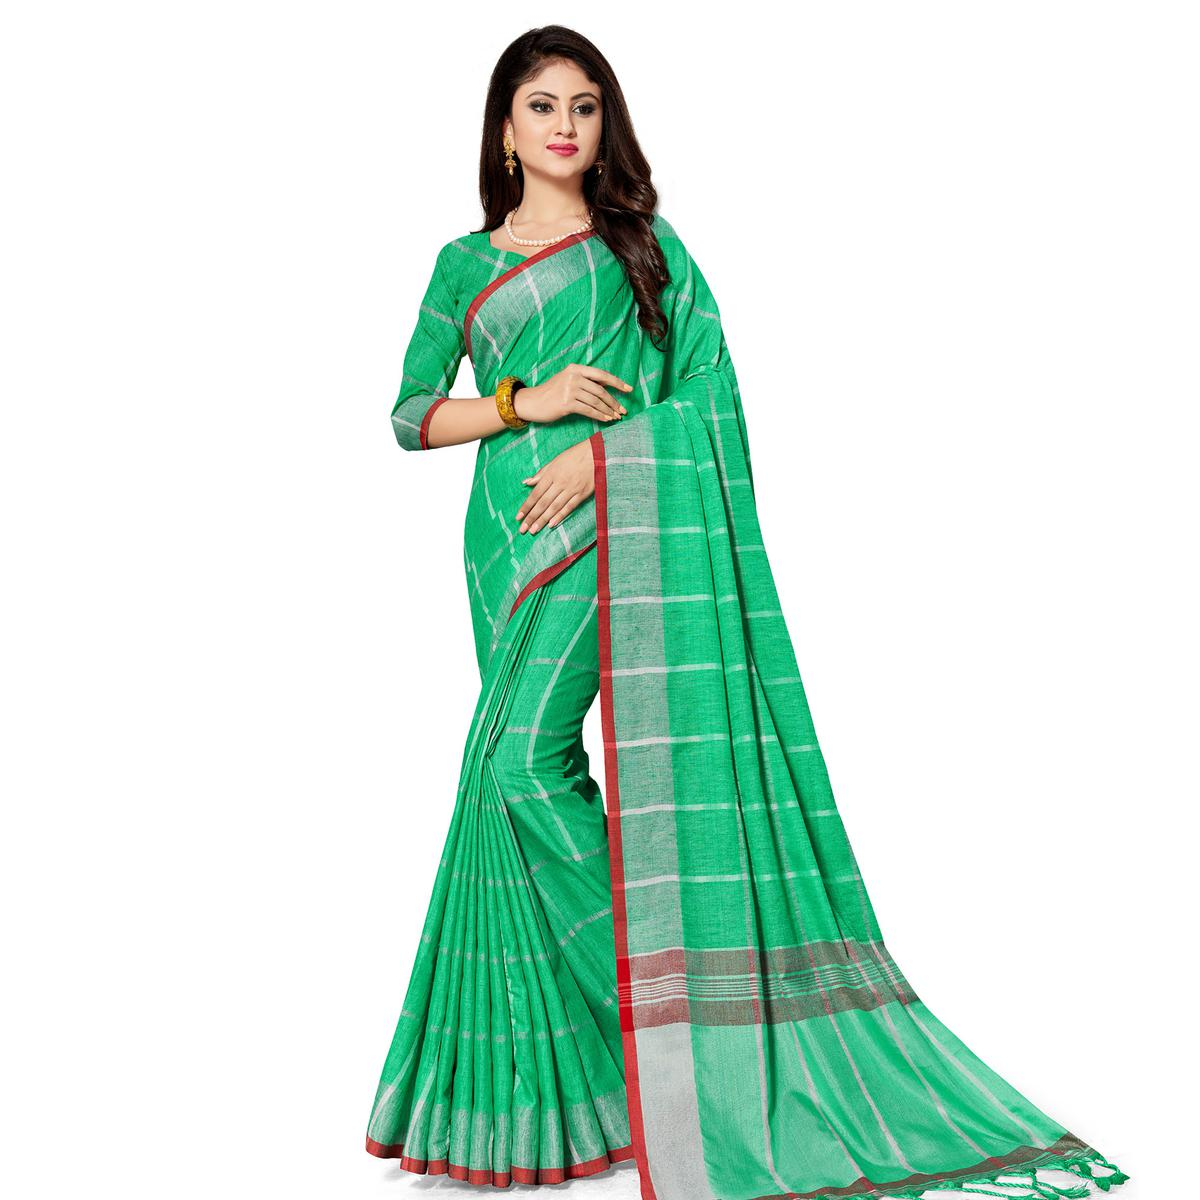 Alluring Green Colored Fesive Wear Stripe Print Cotton Silk Saree With Tassels